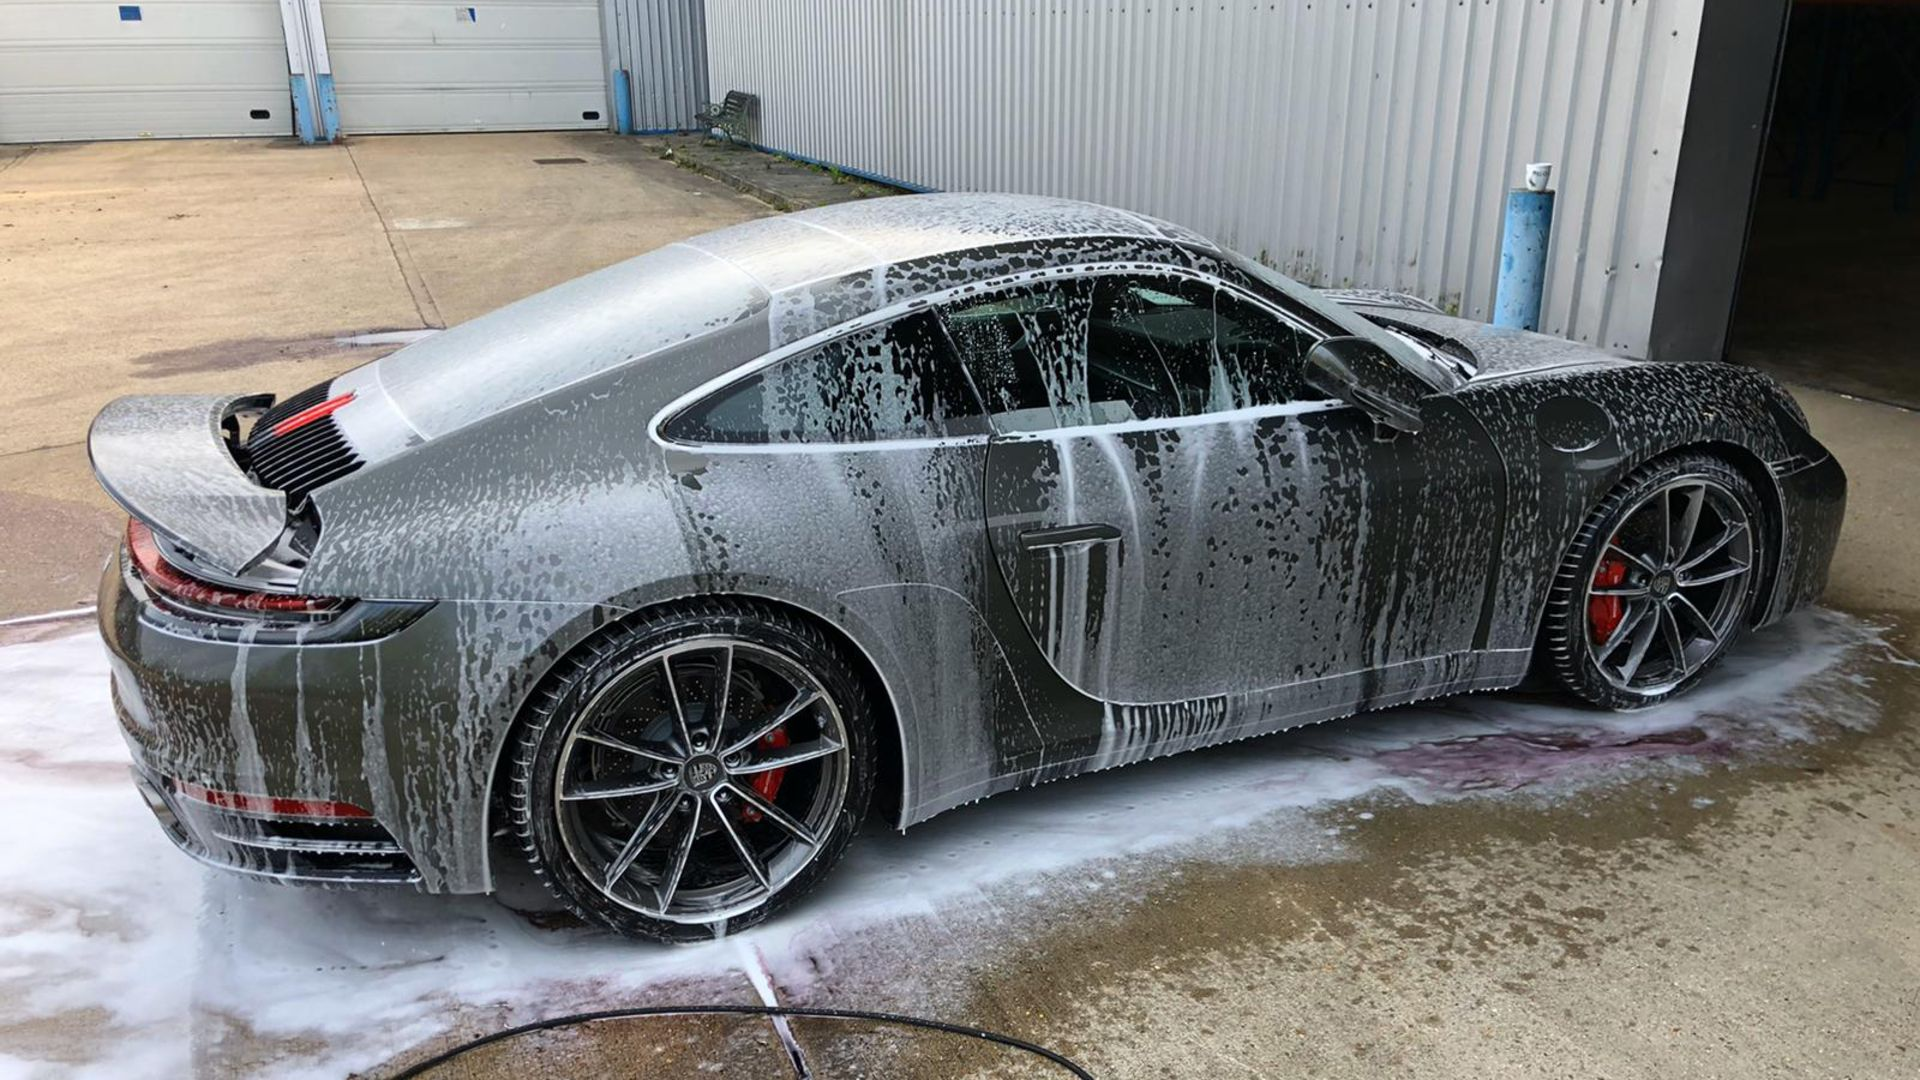 The safest way to wash a car – tip 1